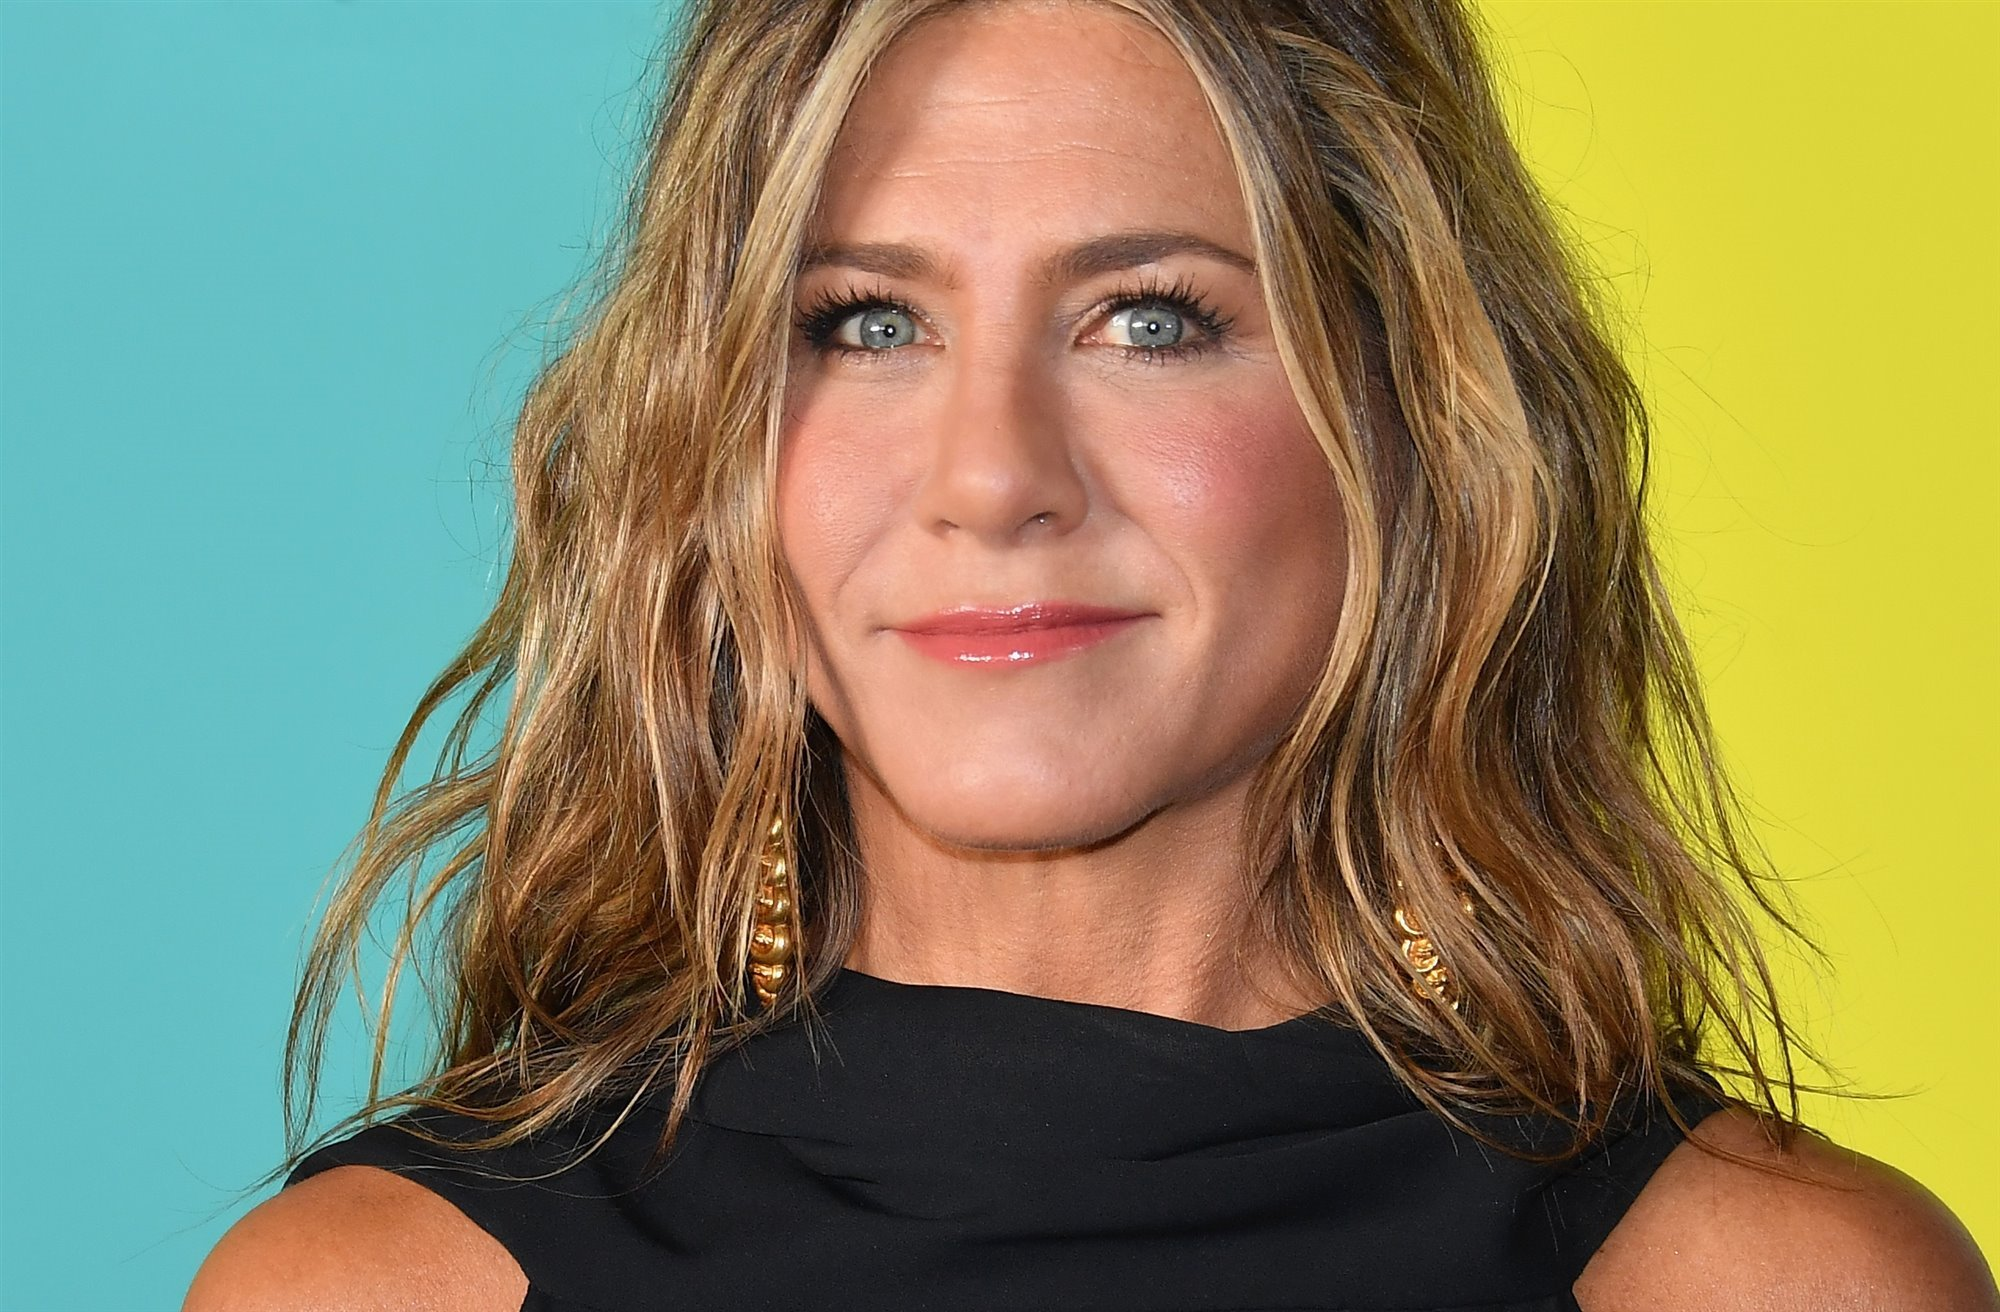 GettyImages-1178685441. GettyImages-jennifer aniston